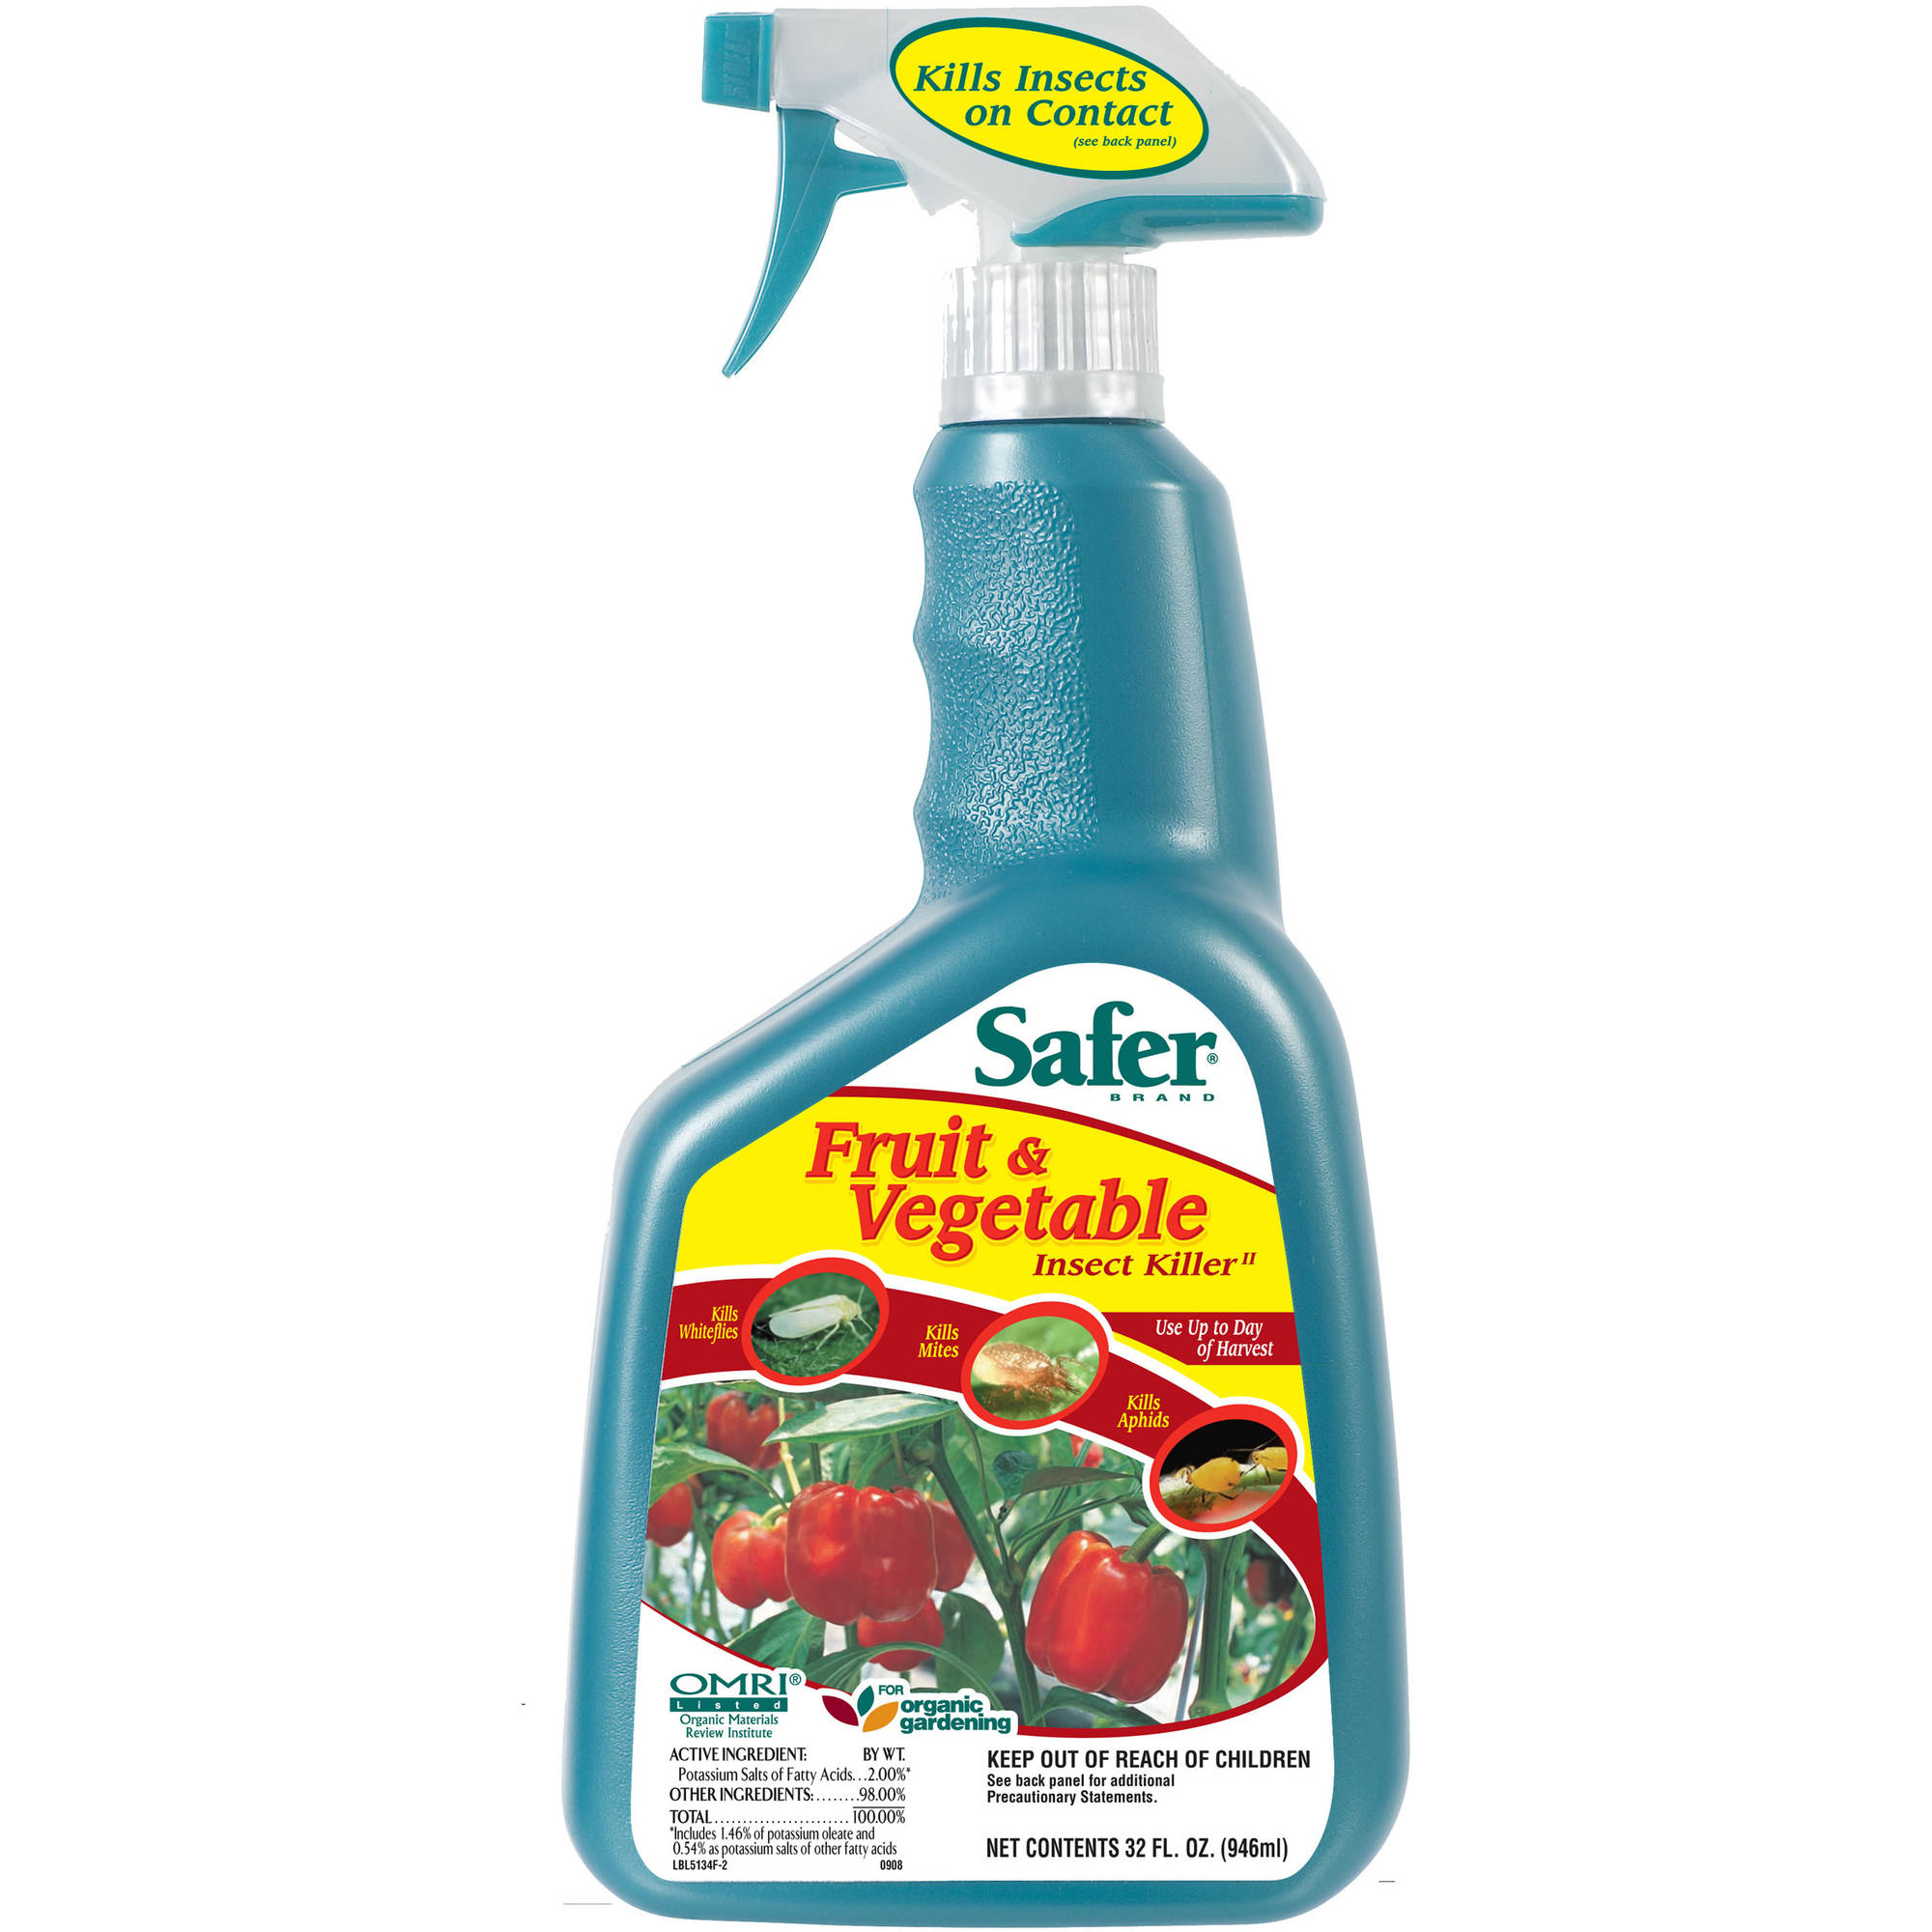 Safer Brand Fruit and Vegetable Insect Killer 32 fl oz Ready-to-Use Spray